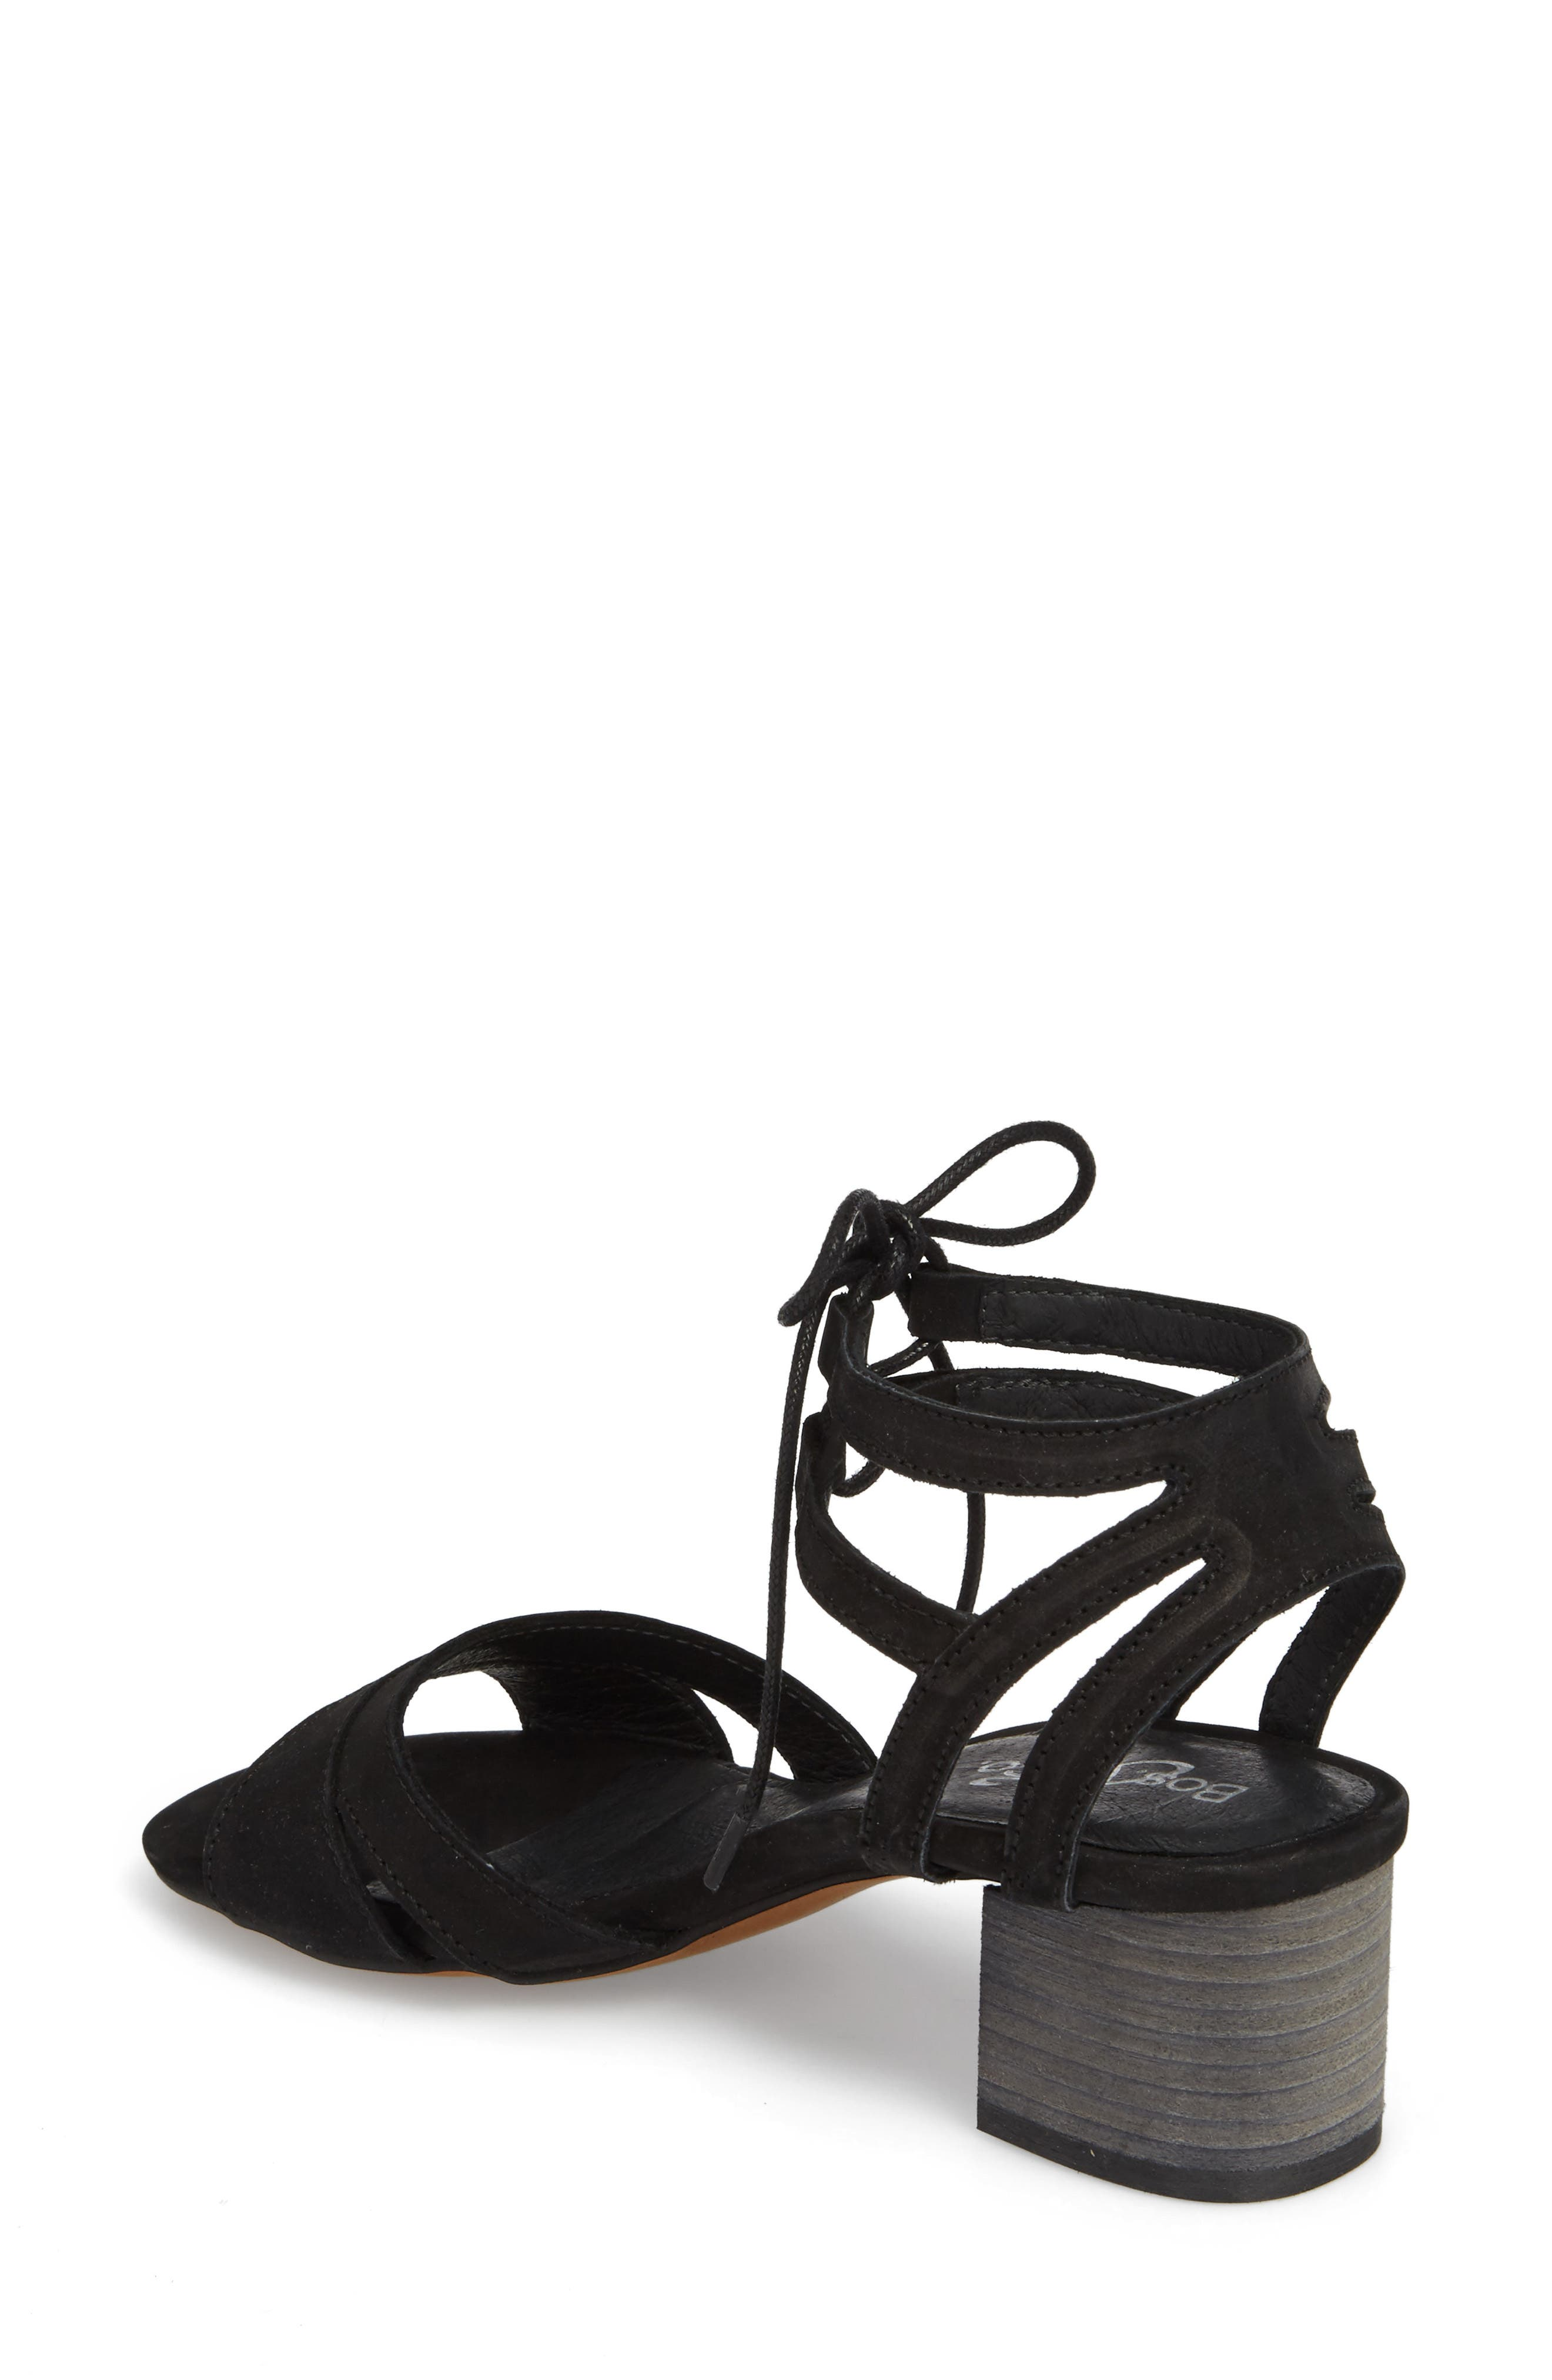 Zorita Sandal,                             Alternate thumbnail 2, color,                             BLACK NUBUCK LEATHER